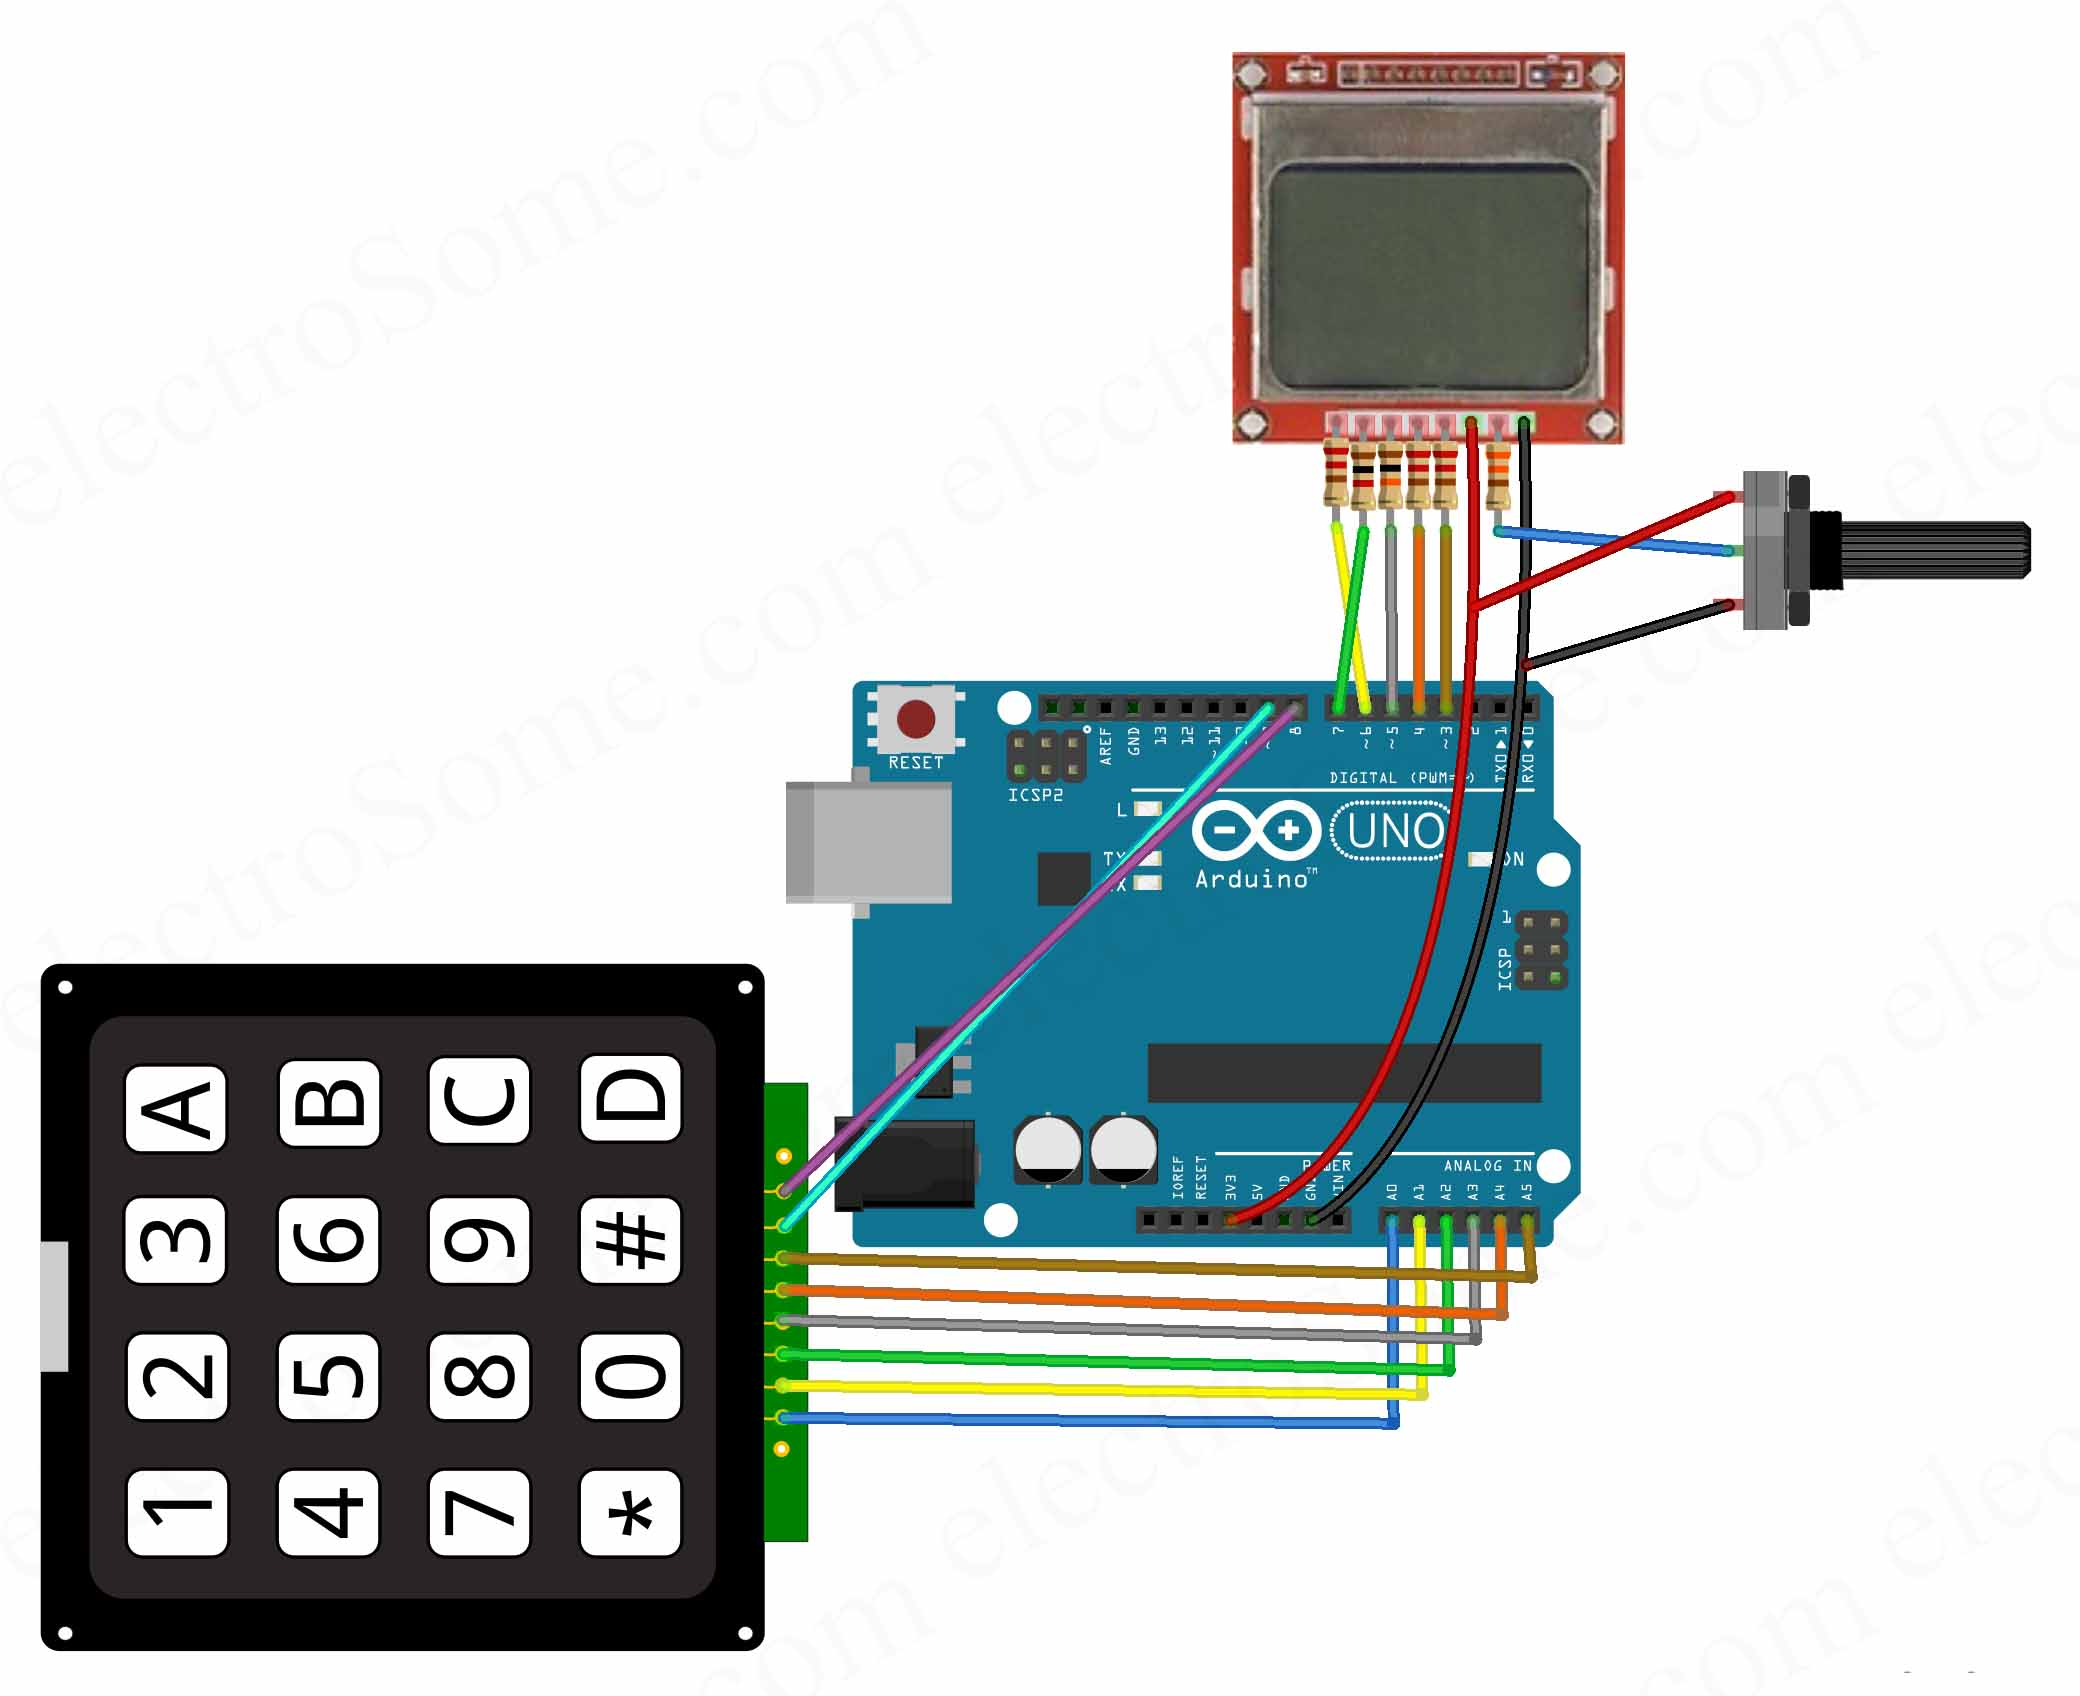 Calculator using Arduino Uno - Hobby Project - Circuit Diagram